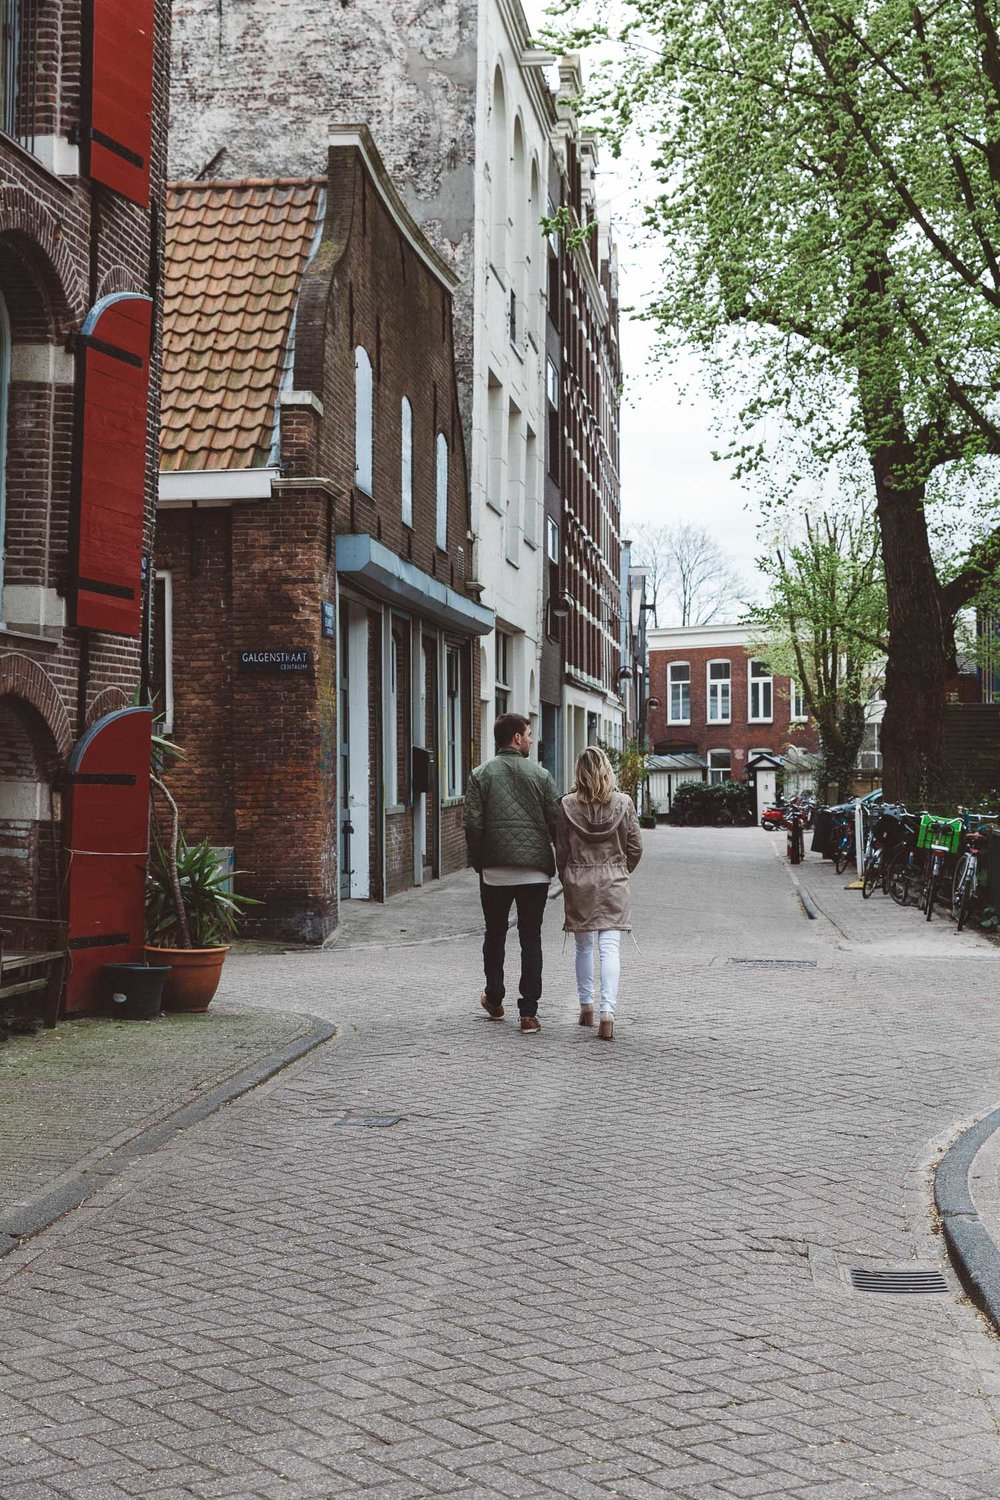 Engagement-shoot-Jessica-and-JJ-by-On-a-hazy-morning-Amsterdam-27.jpg